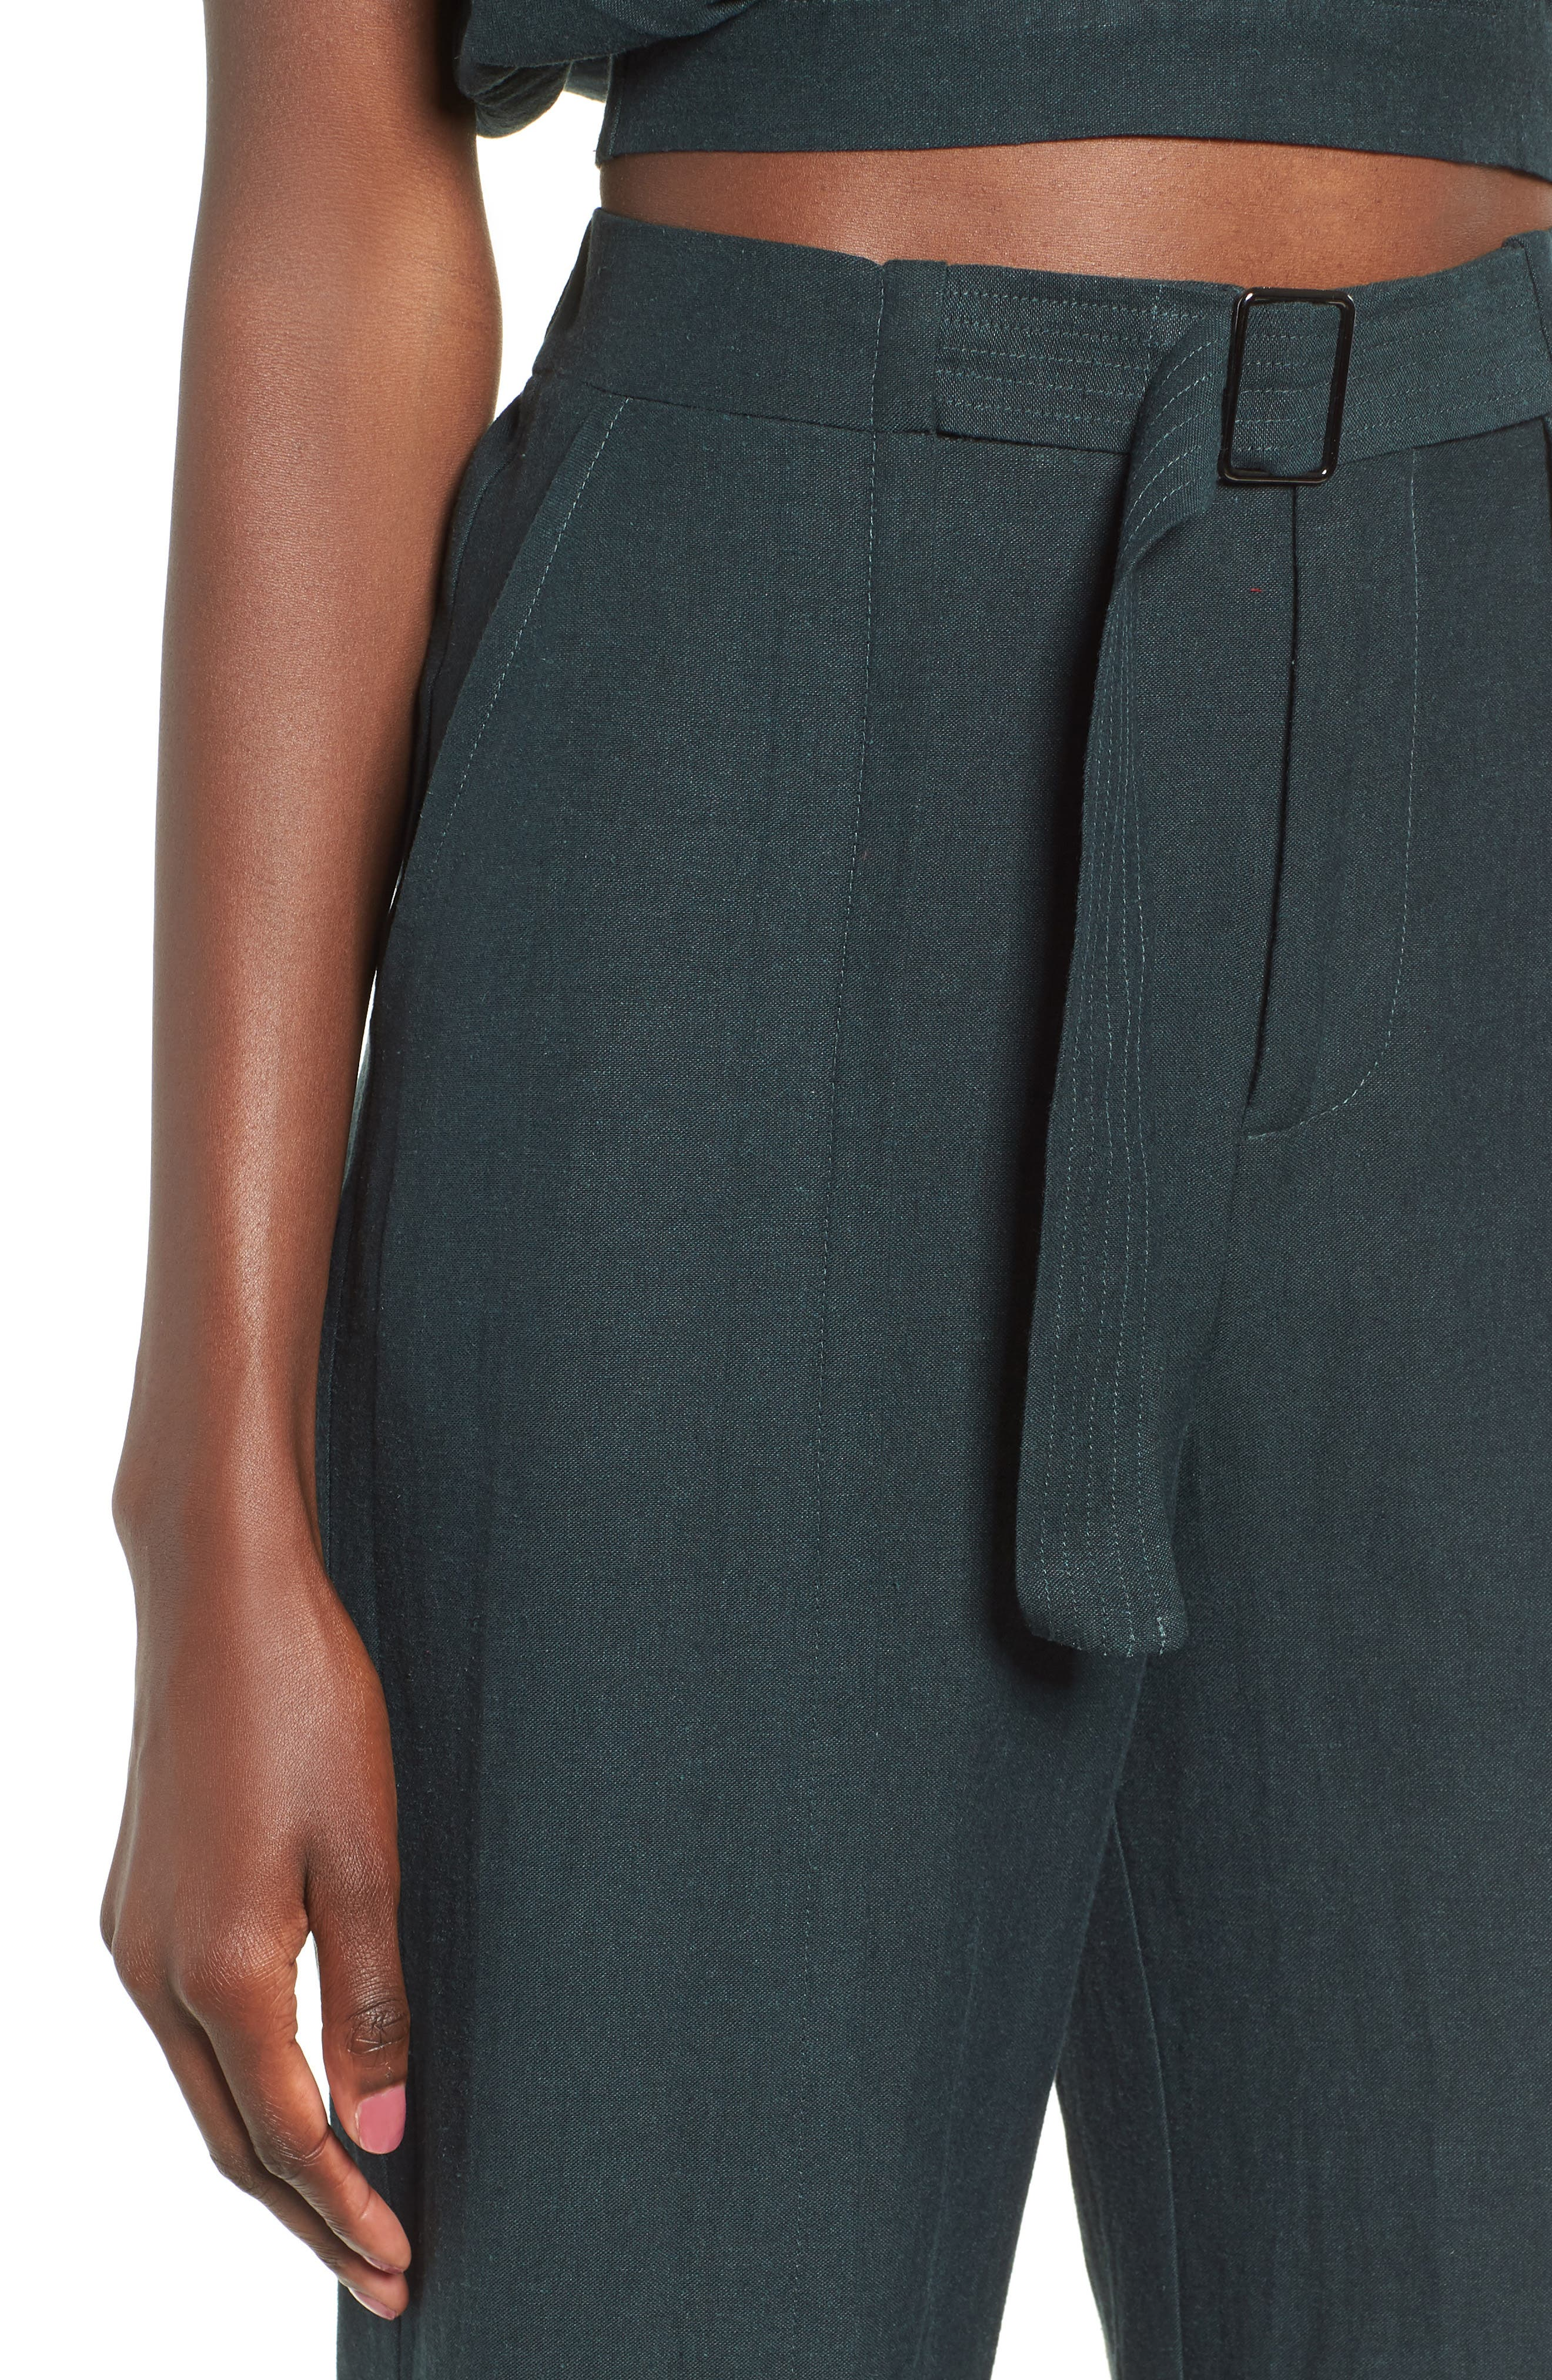 Belted High Waist Pants,                             Alternate thumbnail 4, color,                             FOREST